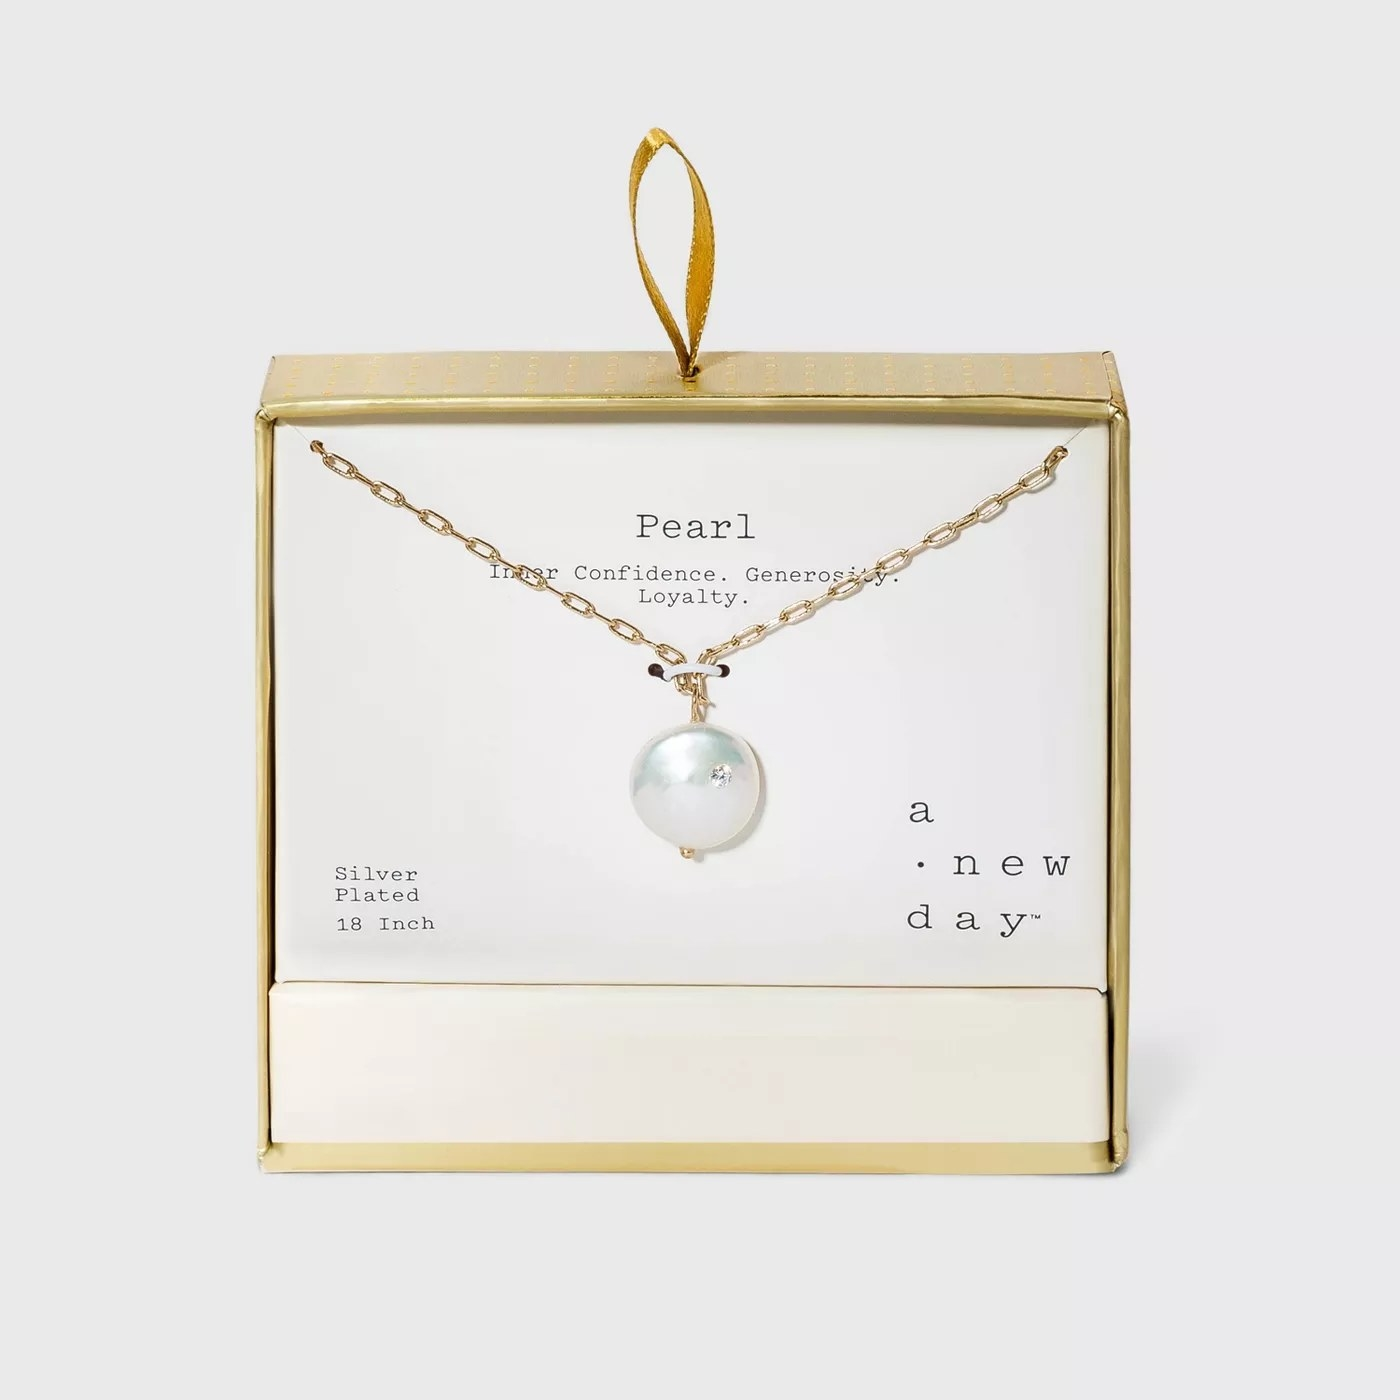 A gold chain necklace with a single pearl